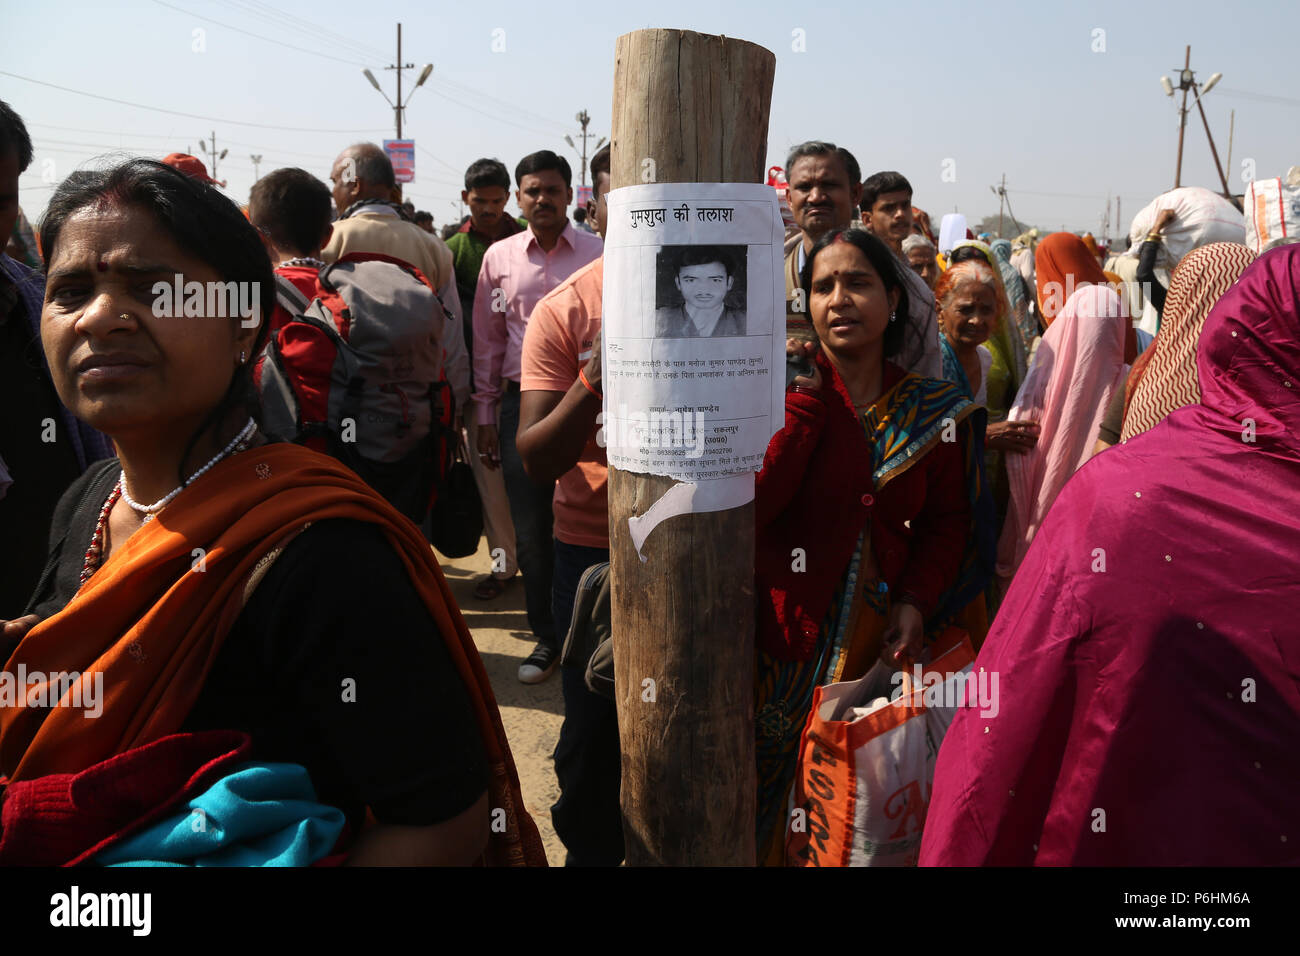 Notice of disappearance of young man during Maha Kumbh mela 2013 in Allahabad , India - Stock Image